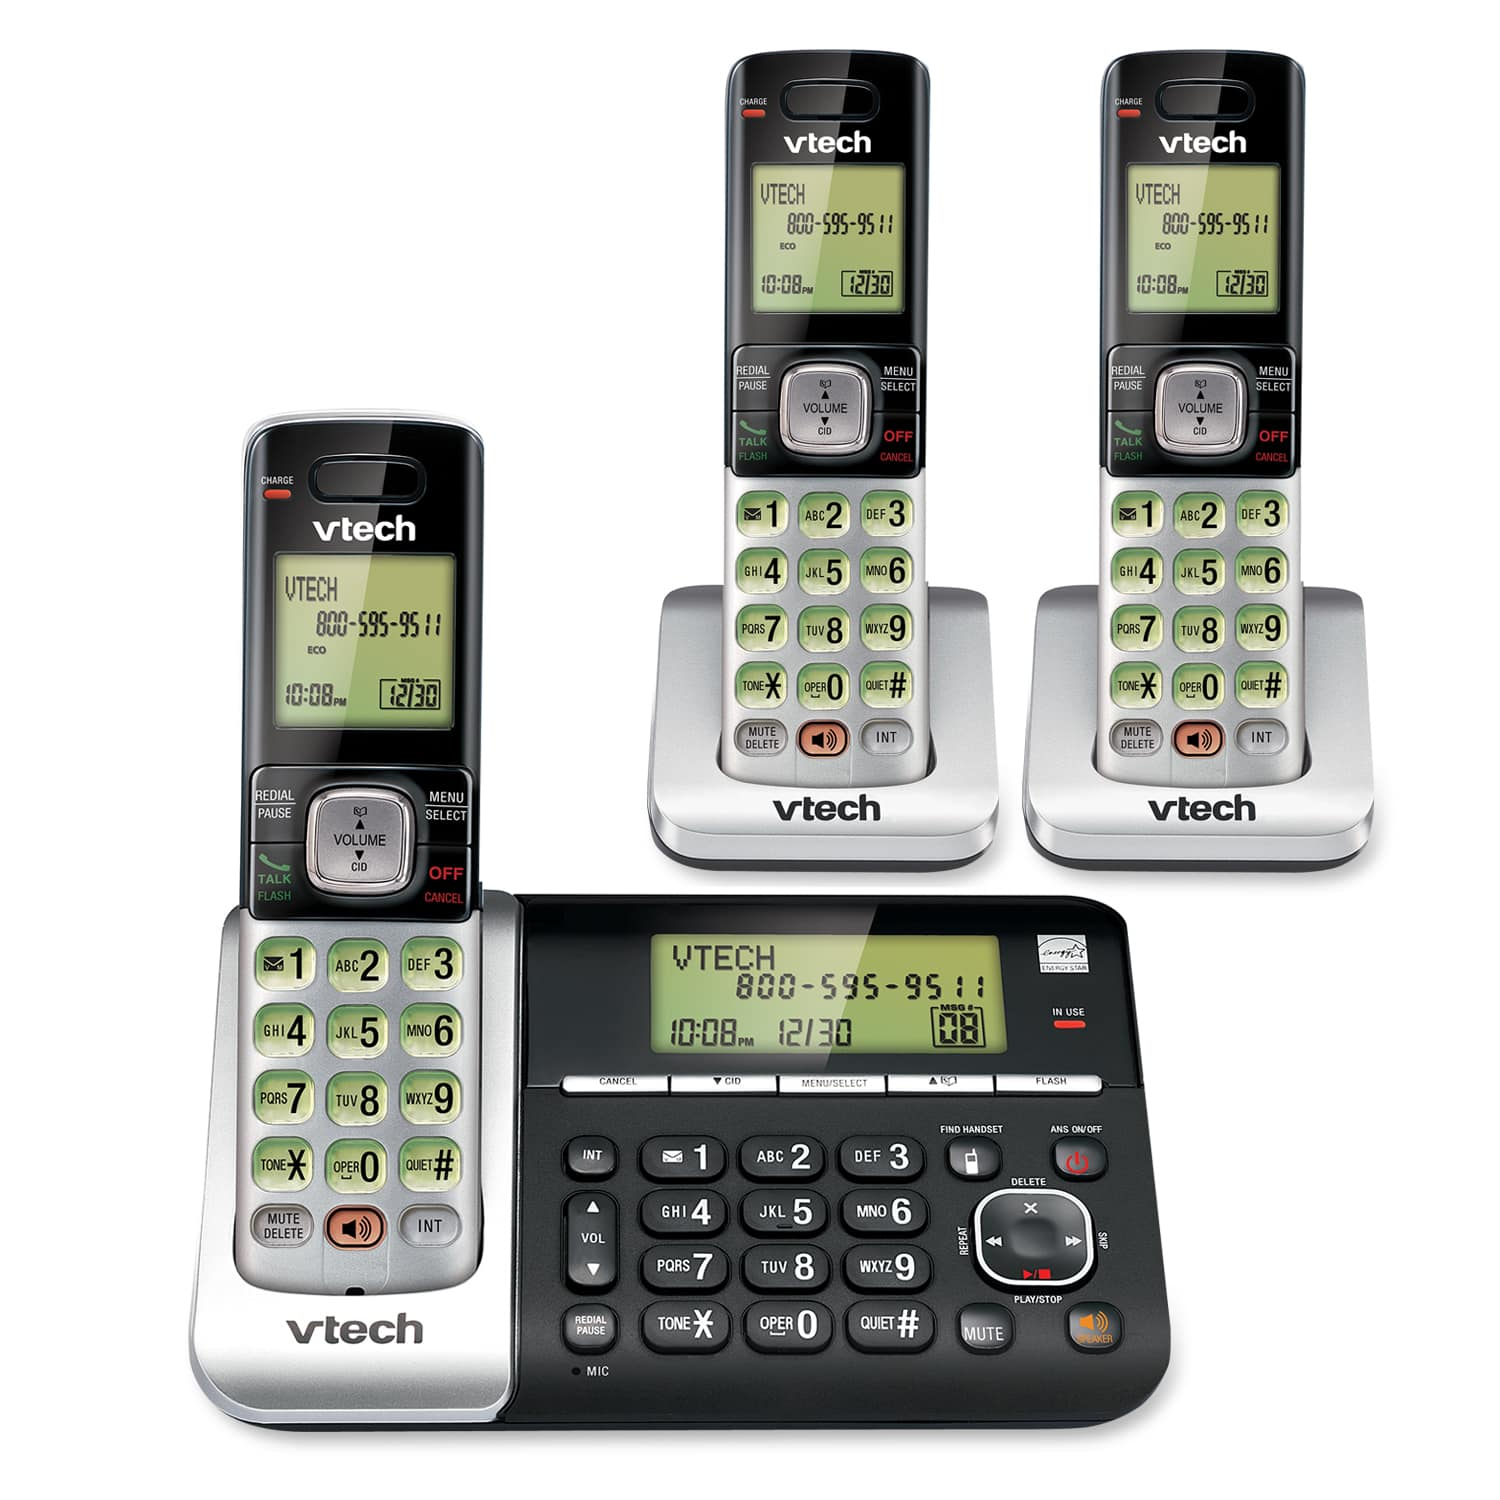 3 Handset Answering System with Dual Caller ID/Call Waiting